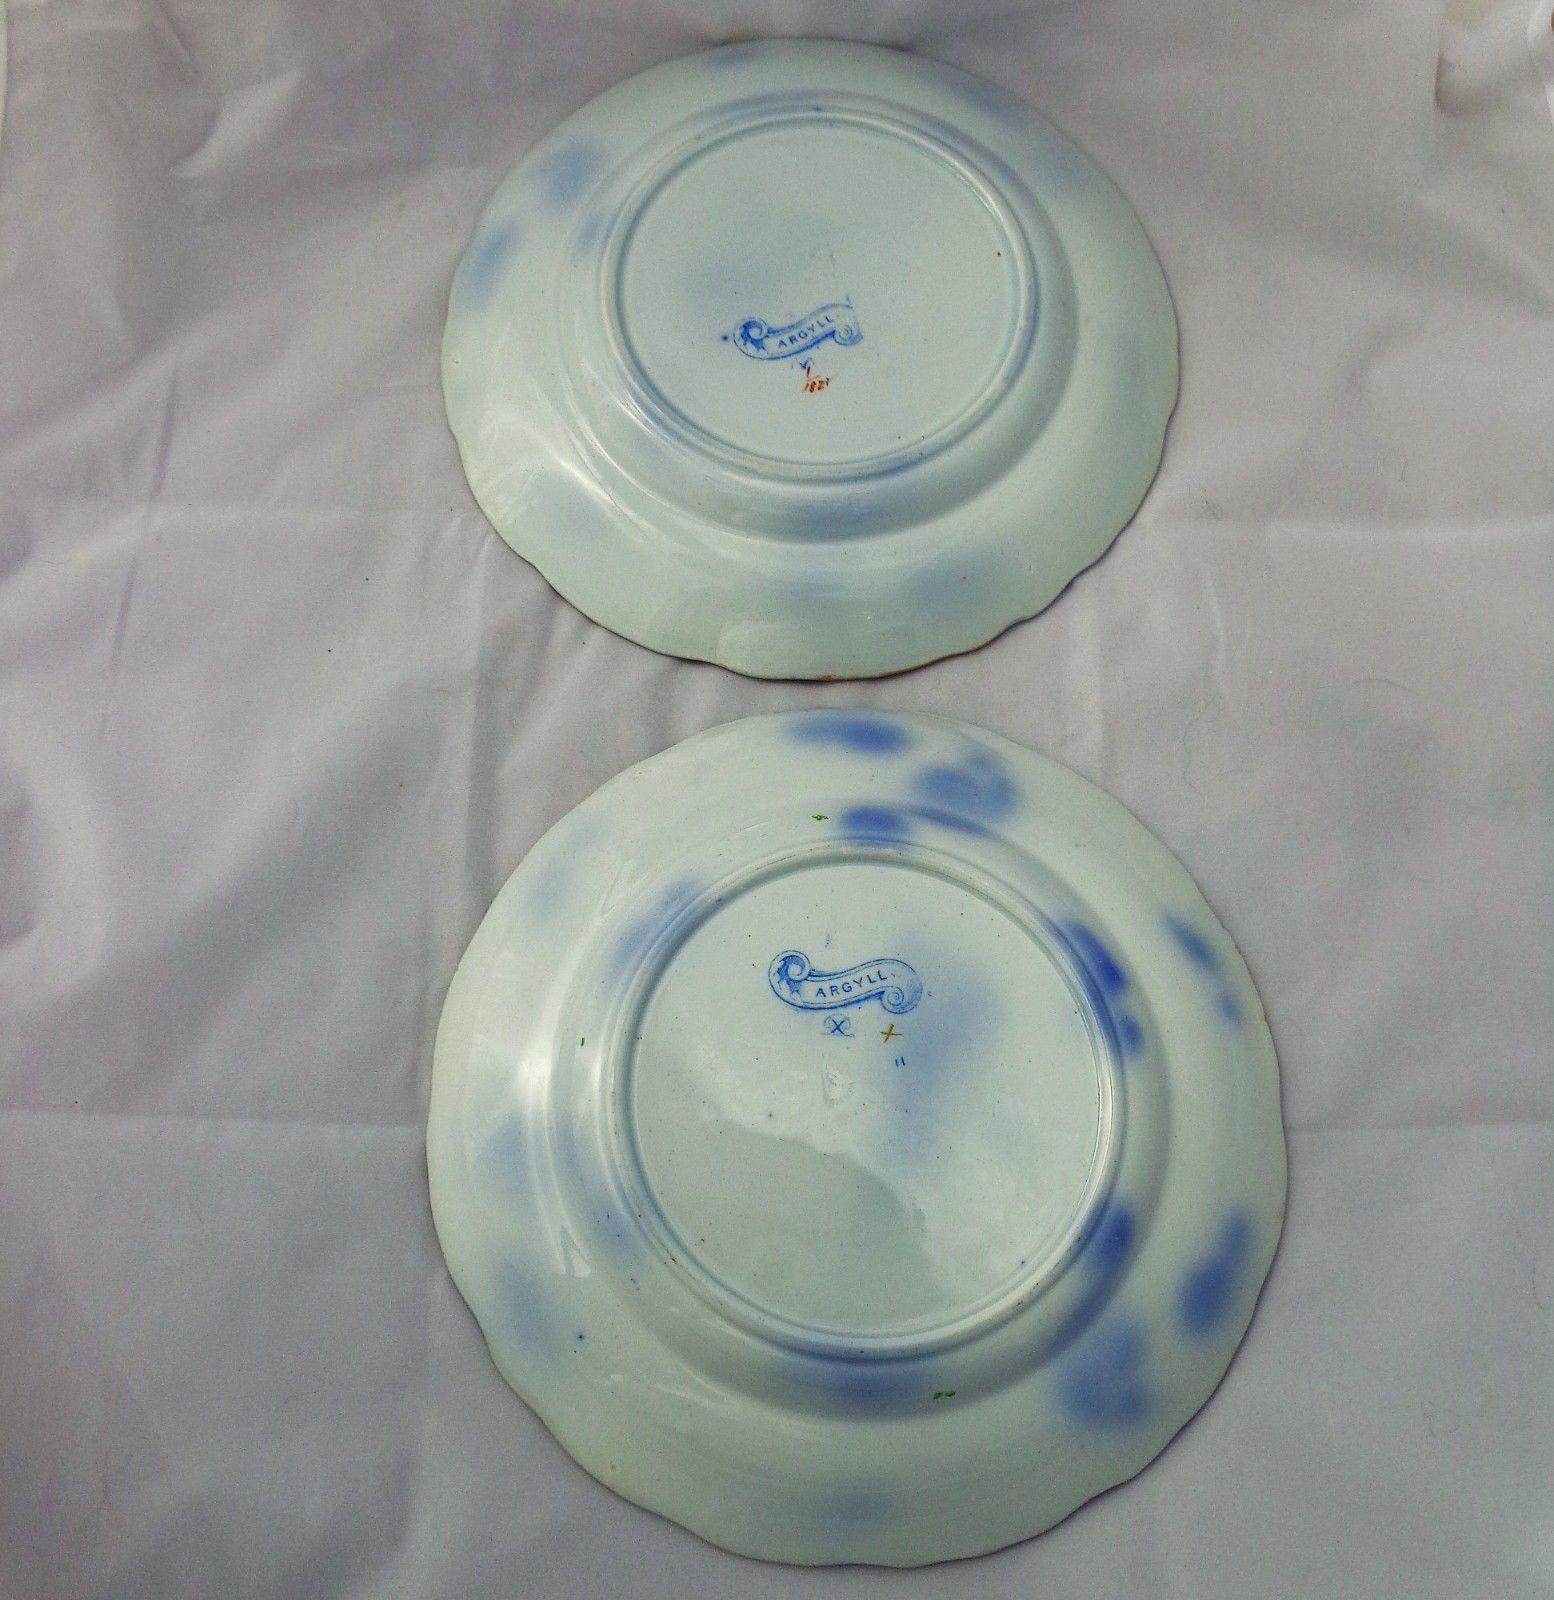 Pair Antique Pearlware Pottery Plates Thomas Dimmock Coloured Argyll Patt c 1850